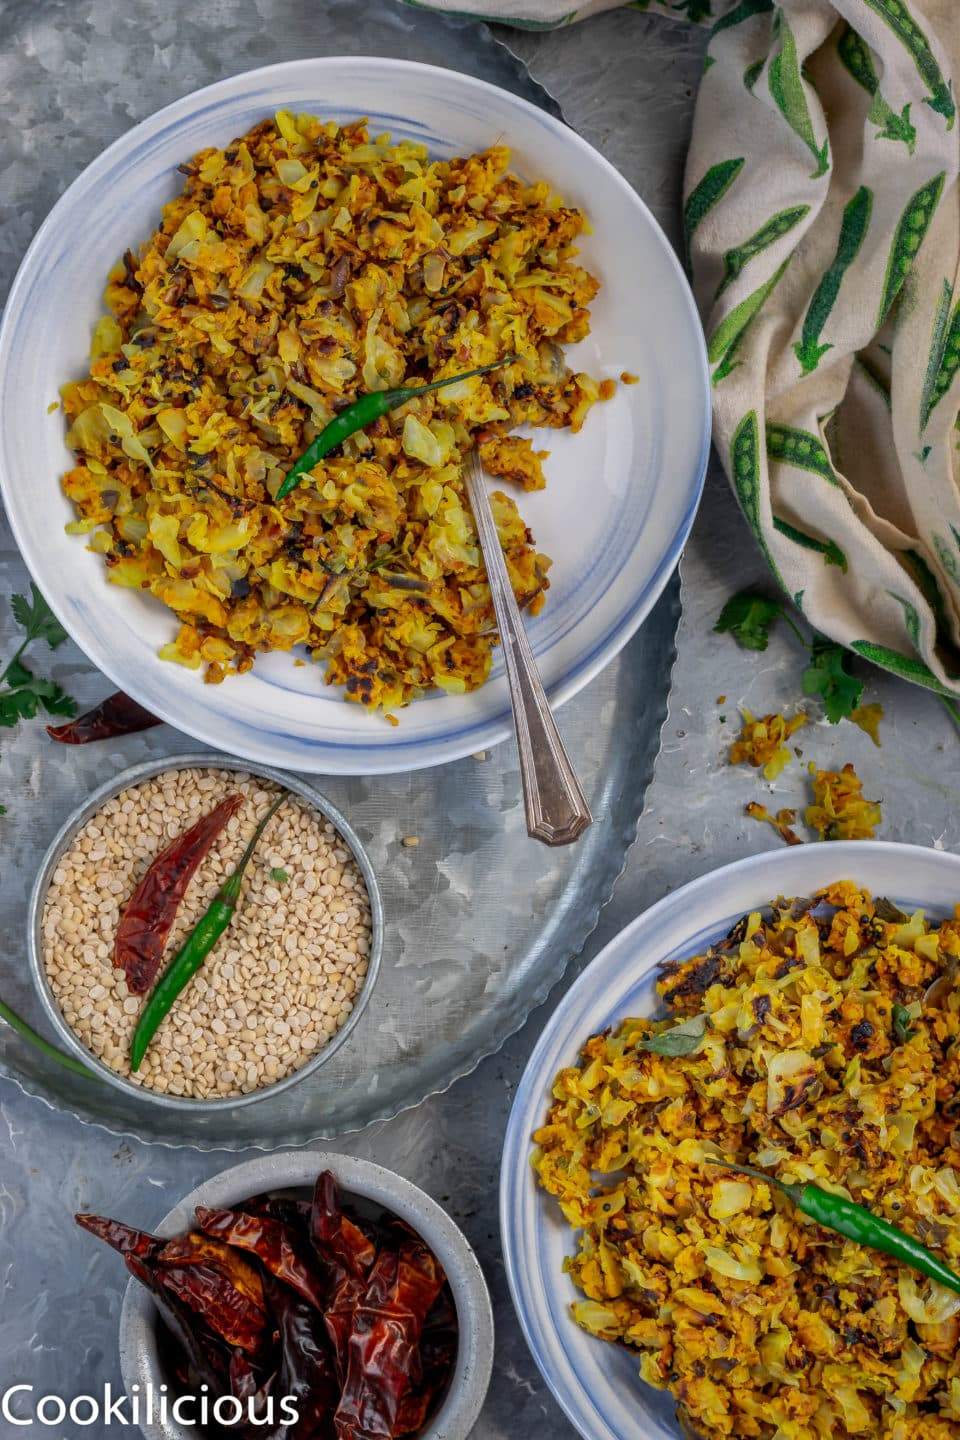 flat lay imahe of two bowls of Cabbage & Chickpea Flour/Besan Stir-Fry